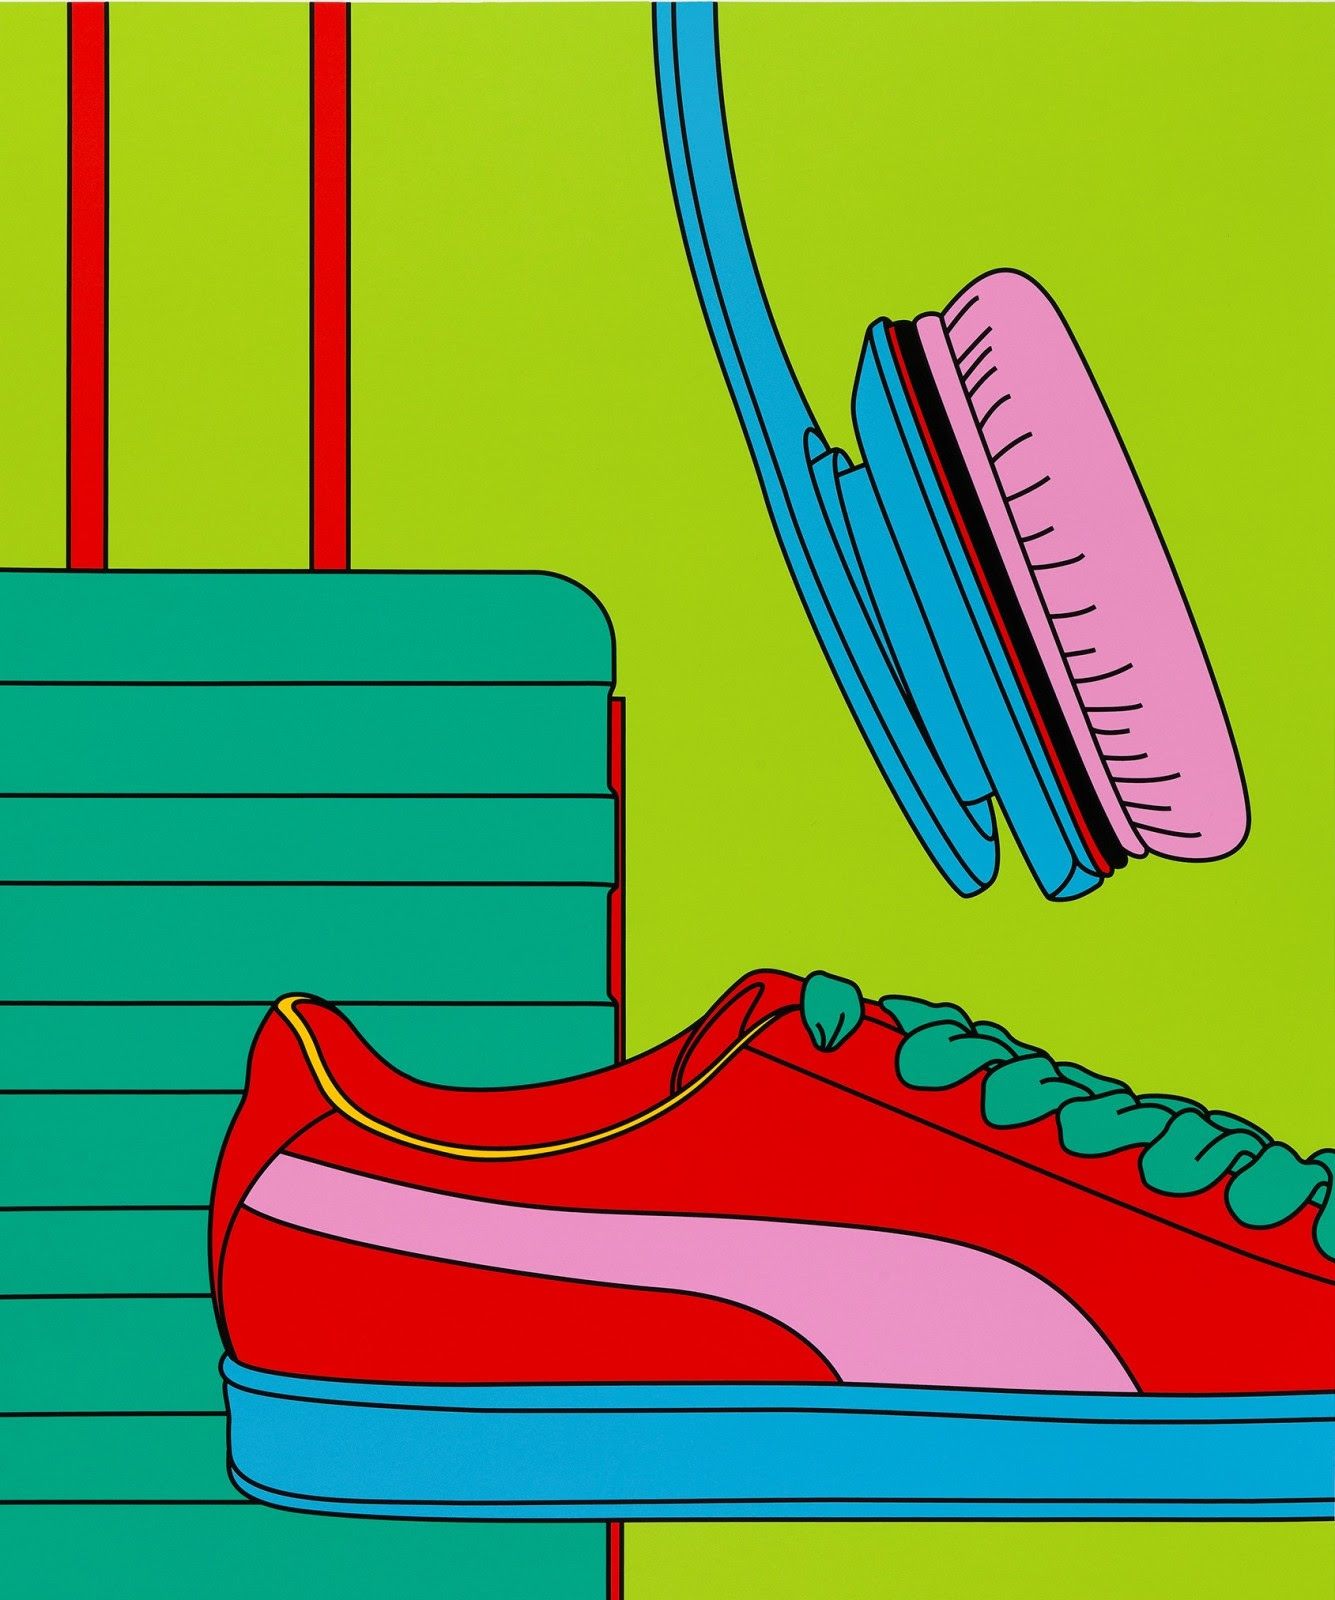 Michael Craig-Martin; Trainer from: Intimate Relations II, 2021